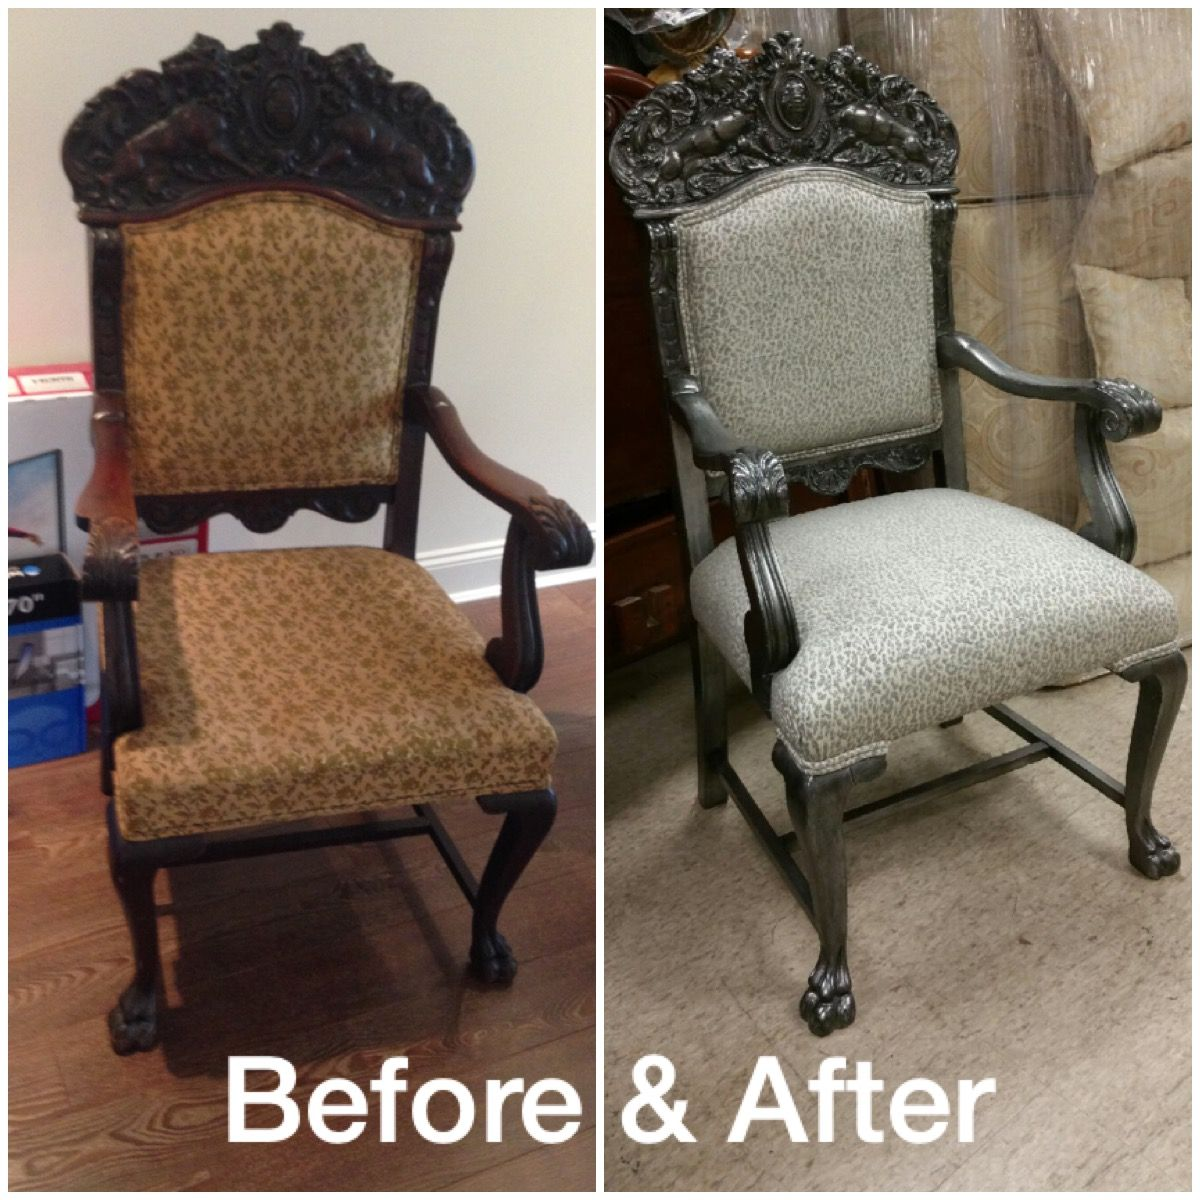 Before And After Pictures Of The Restoration Work